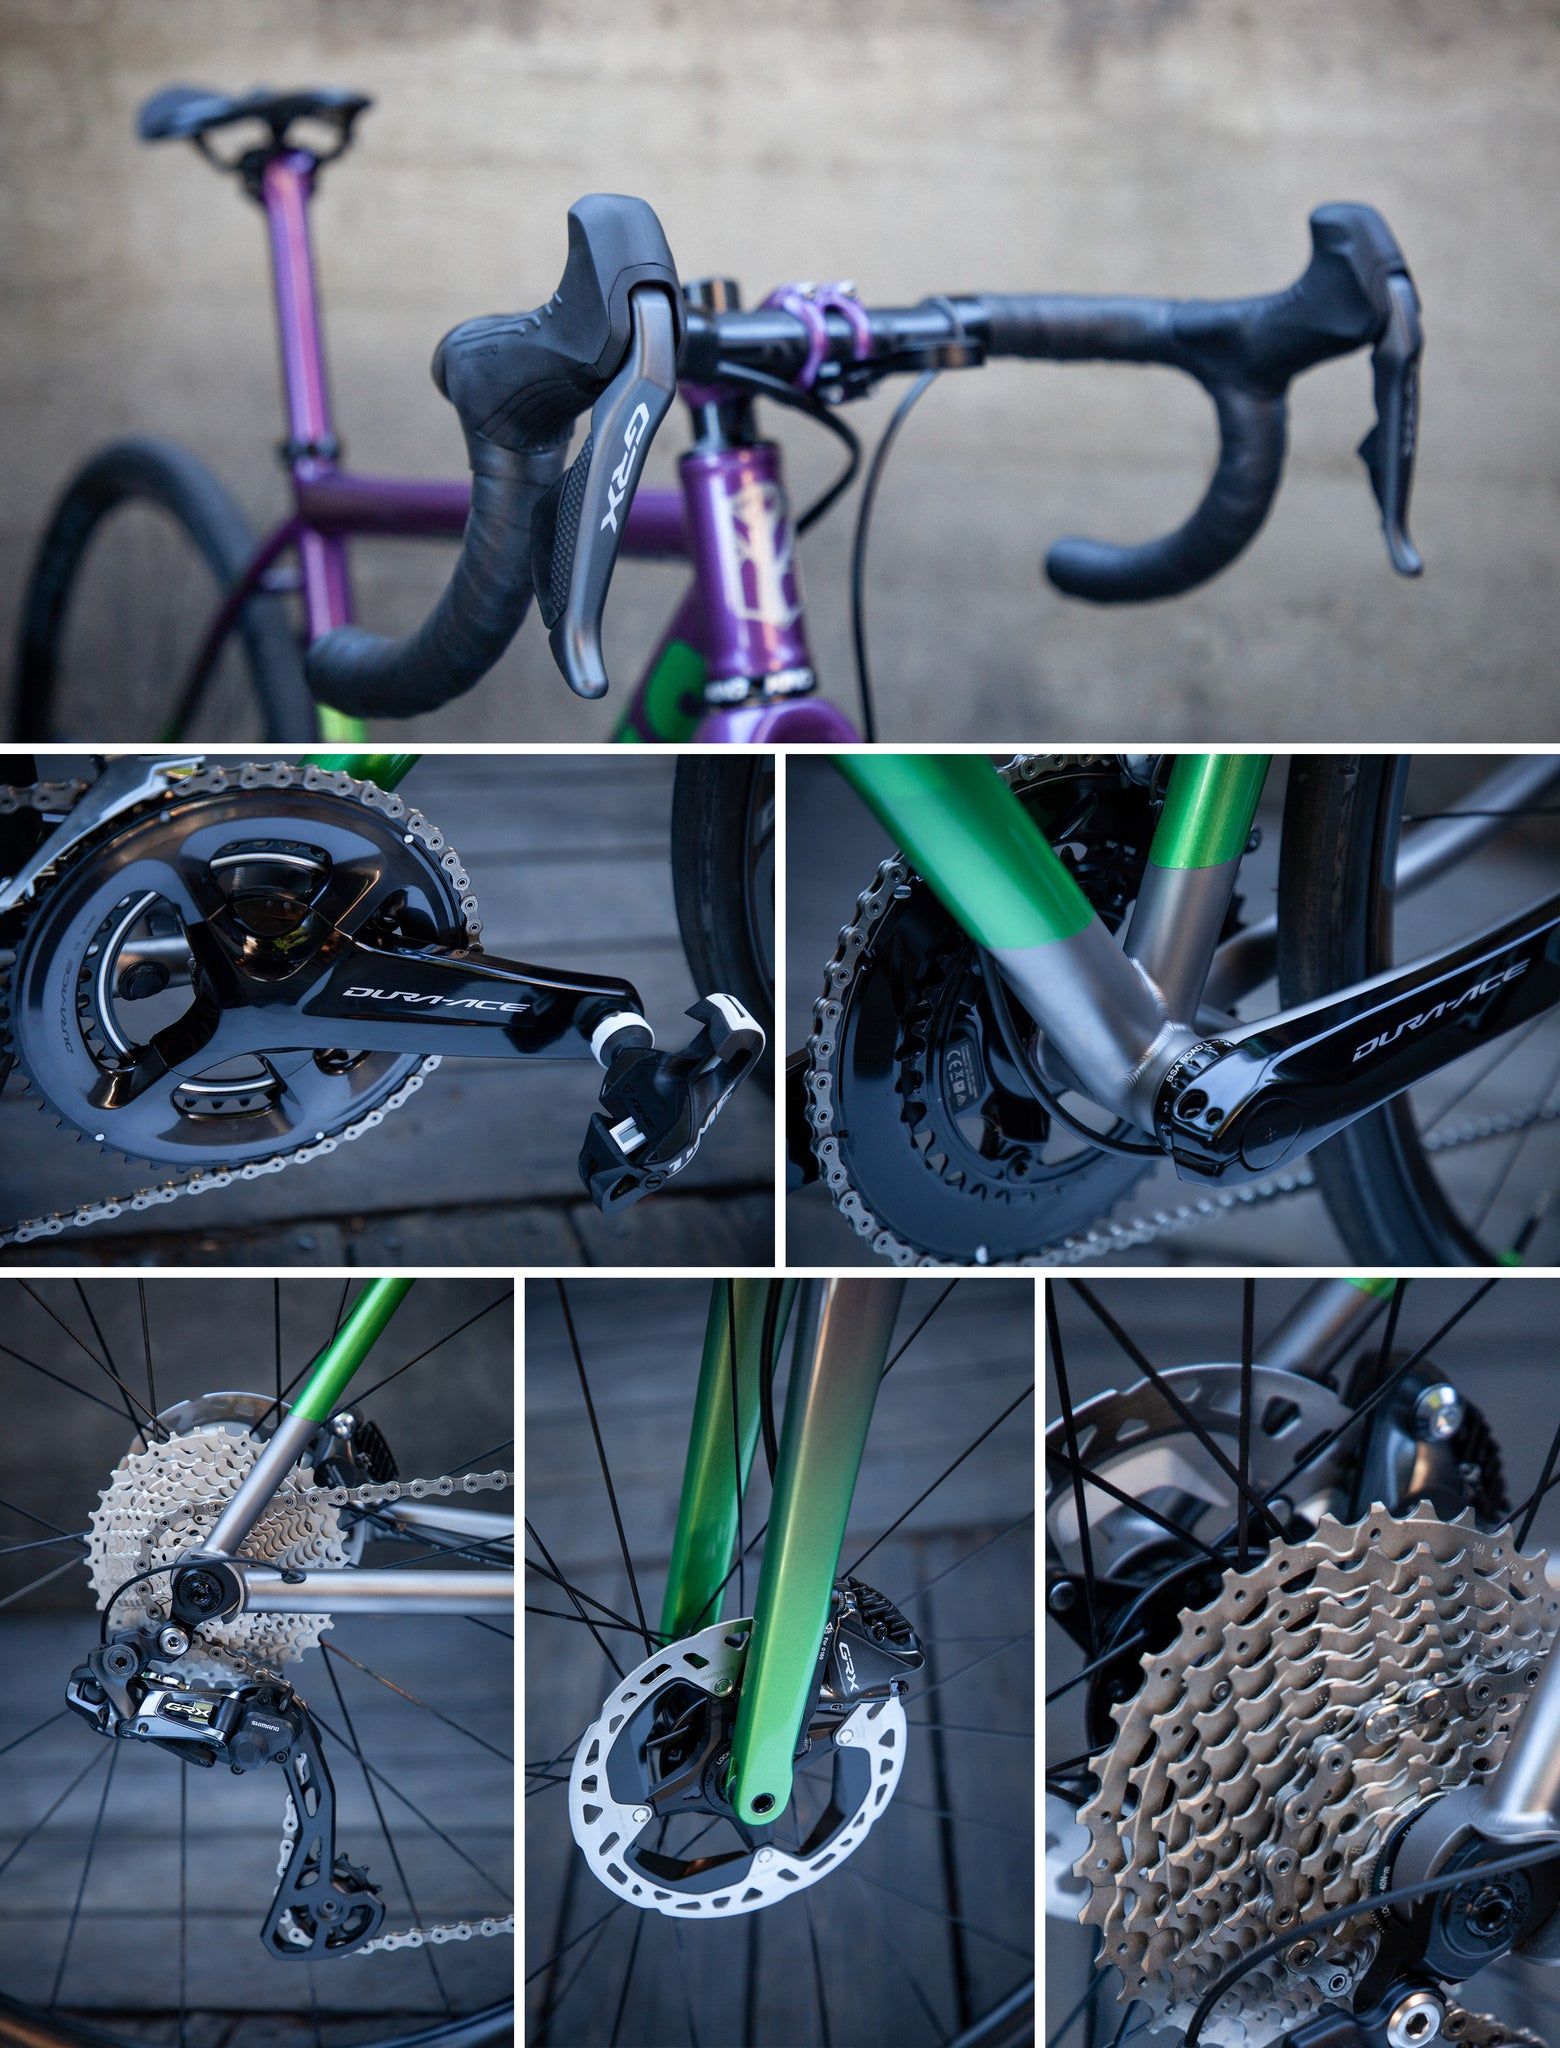 mosaic gt1 gravel bike purple green drivetrain shimano GRX